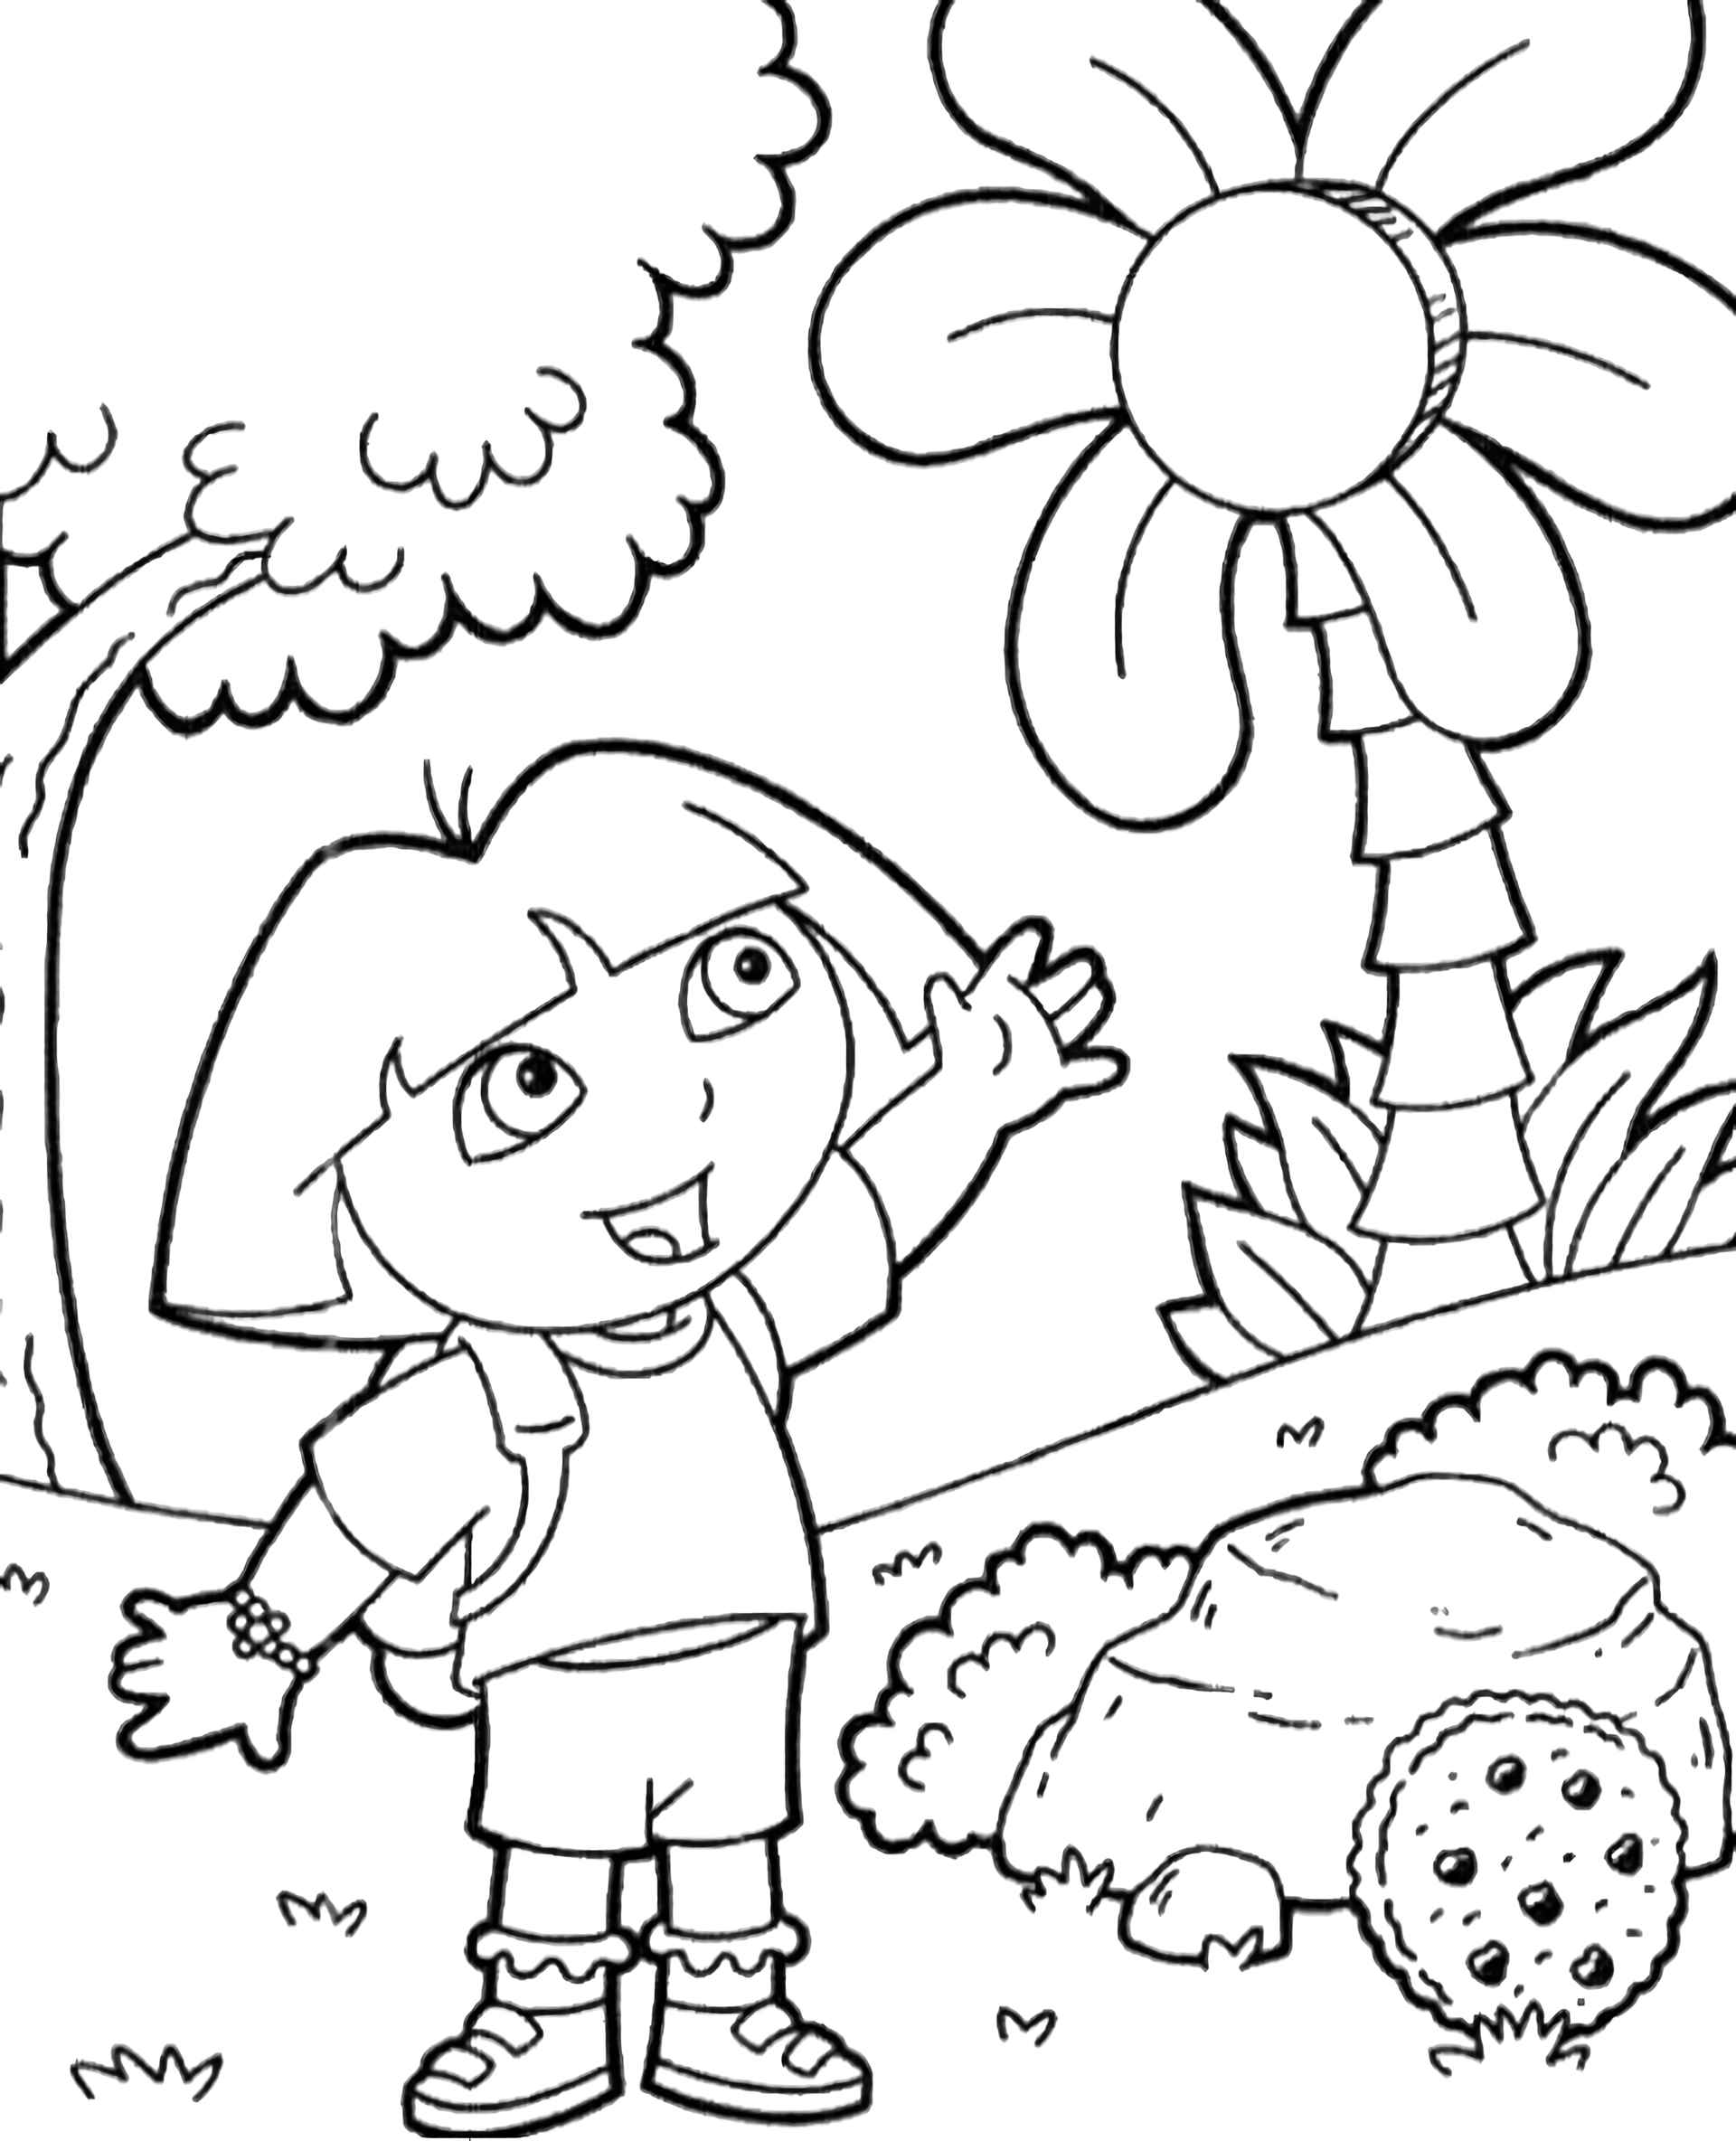 Dora Looks At The Tree Coloring Page